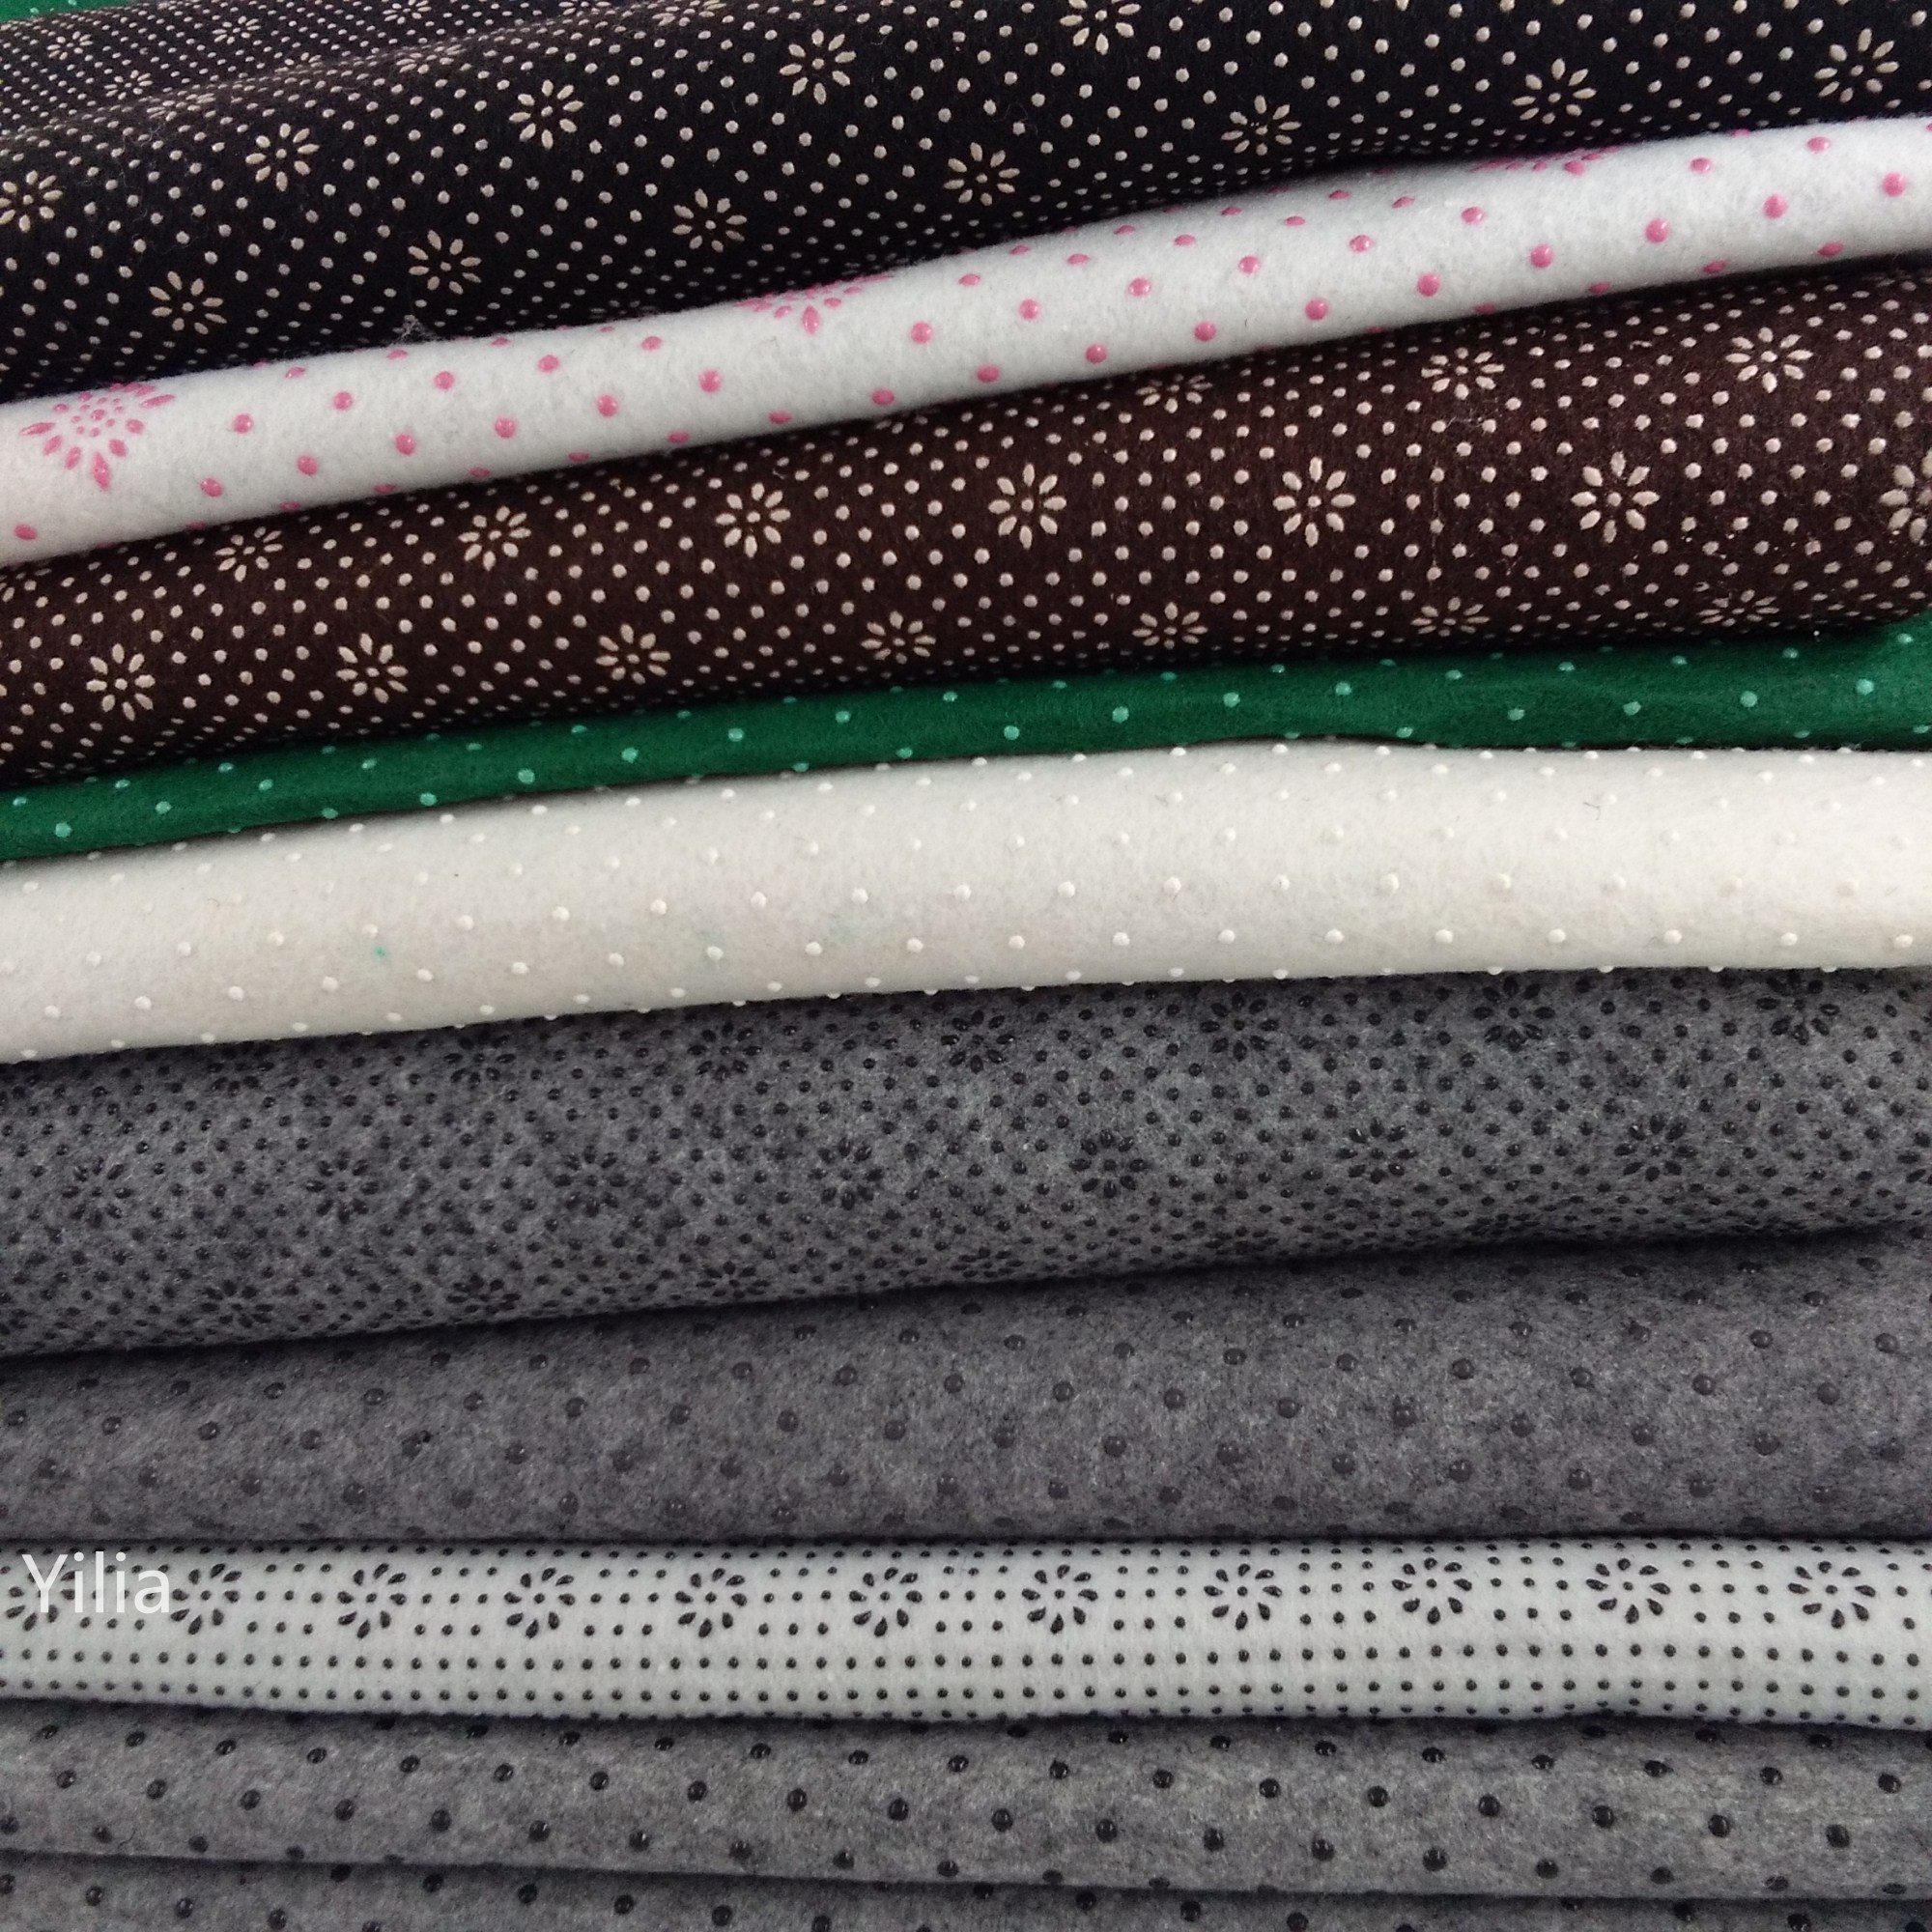 1mm 3mm PVC dotted 100% Polyester non-slip nonwoven carpet underaly backing cloth fabric